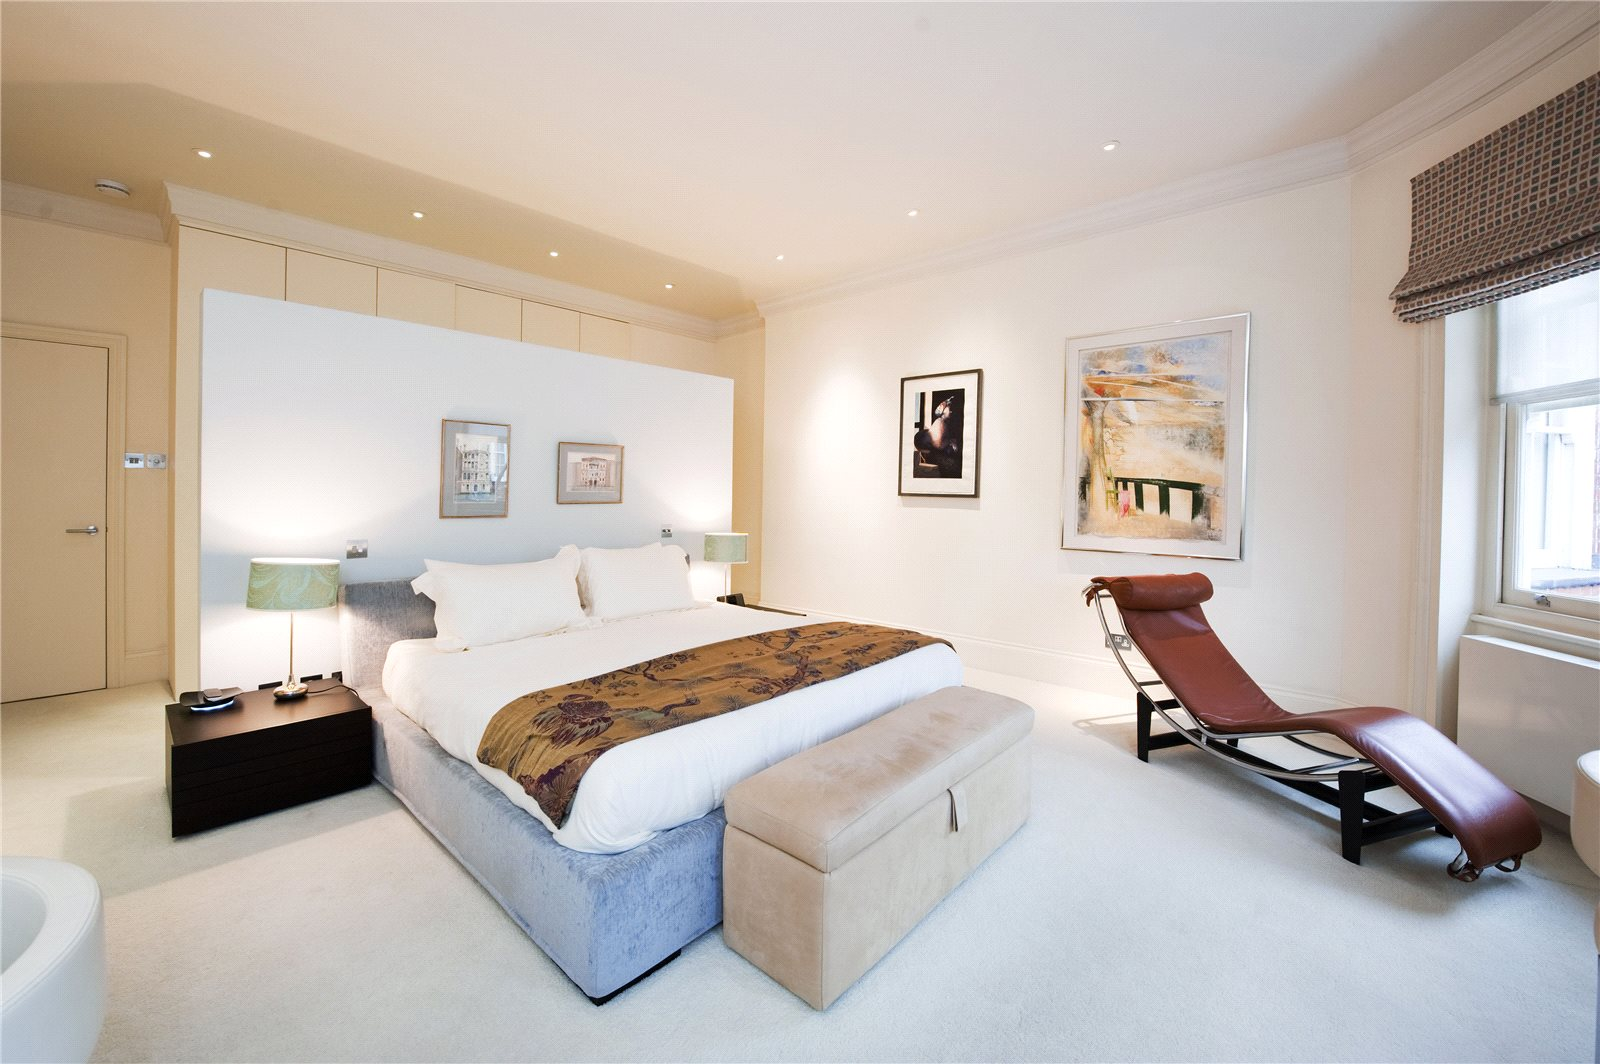 Additional photo for property listing at Sloane Court West, London, SW3 London, Engeland